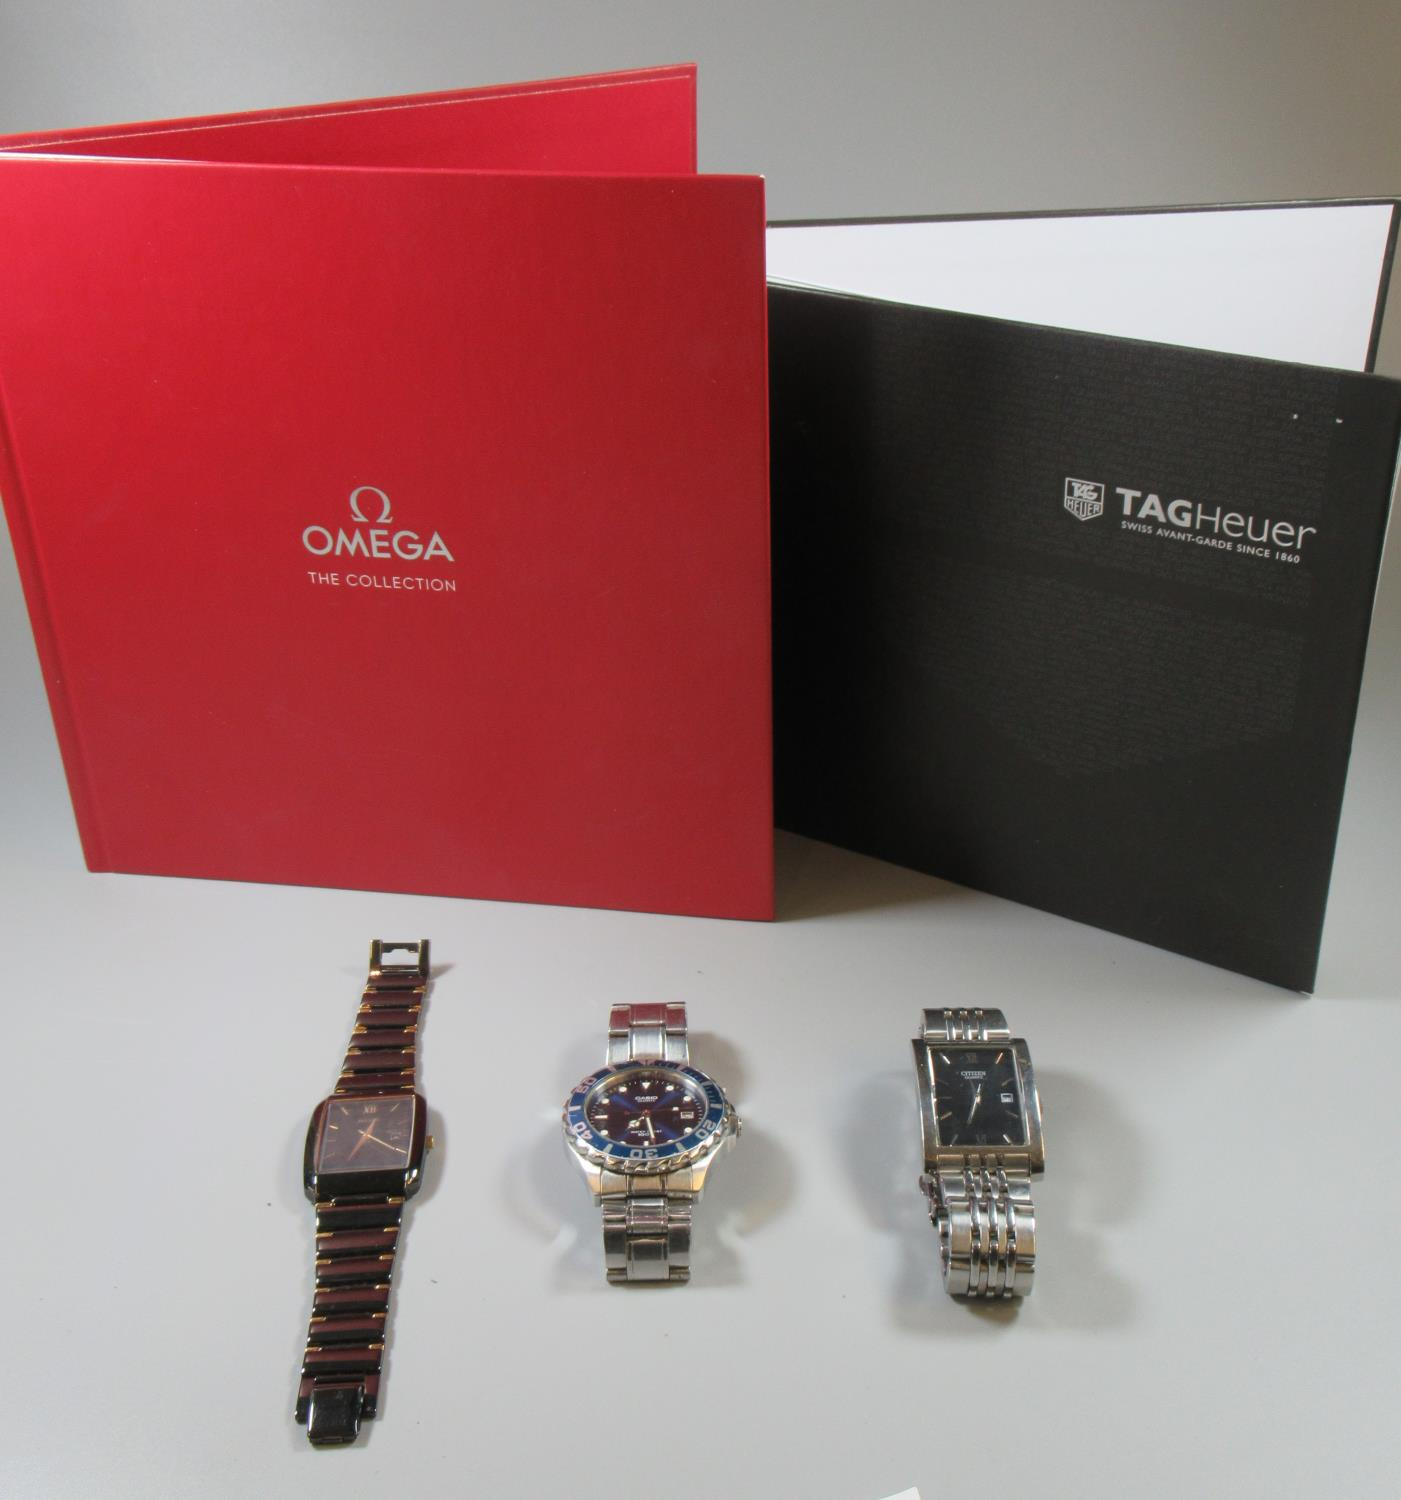 Omega The Collection book, together with a similar Tag Heuer book,together with a shoe box of